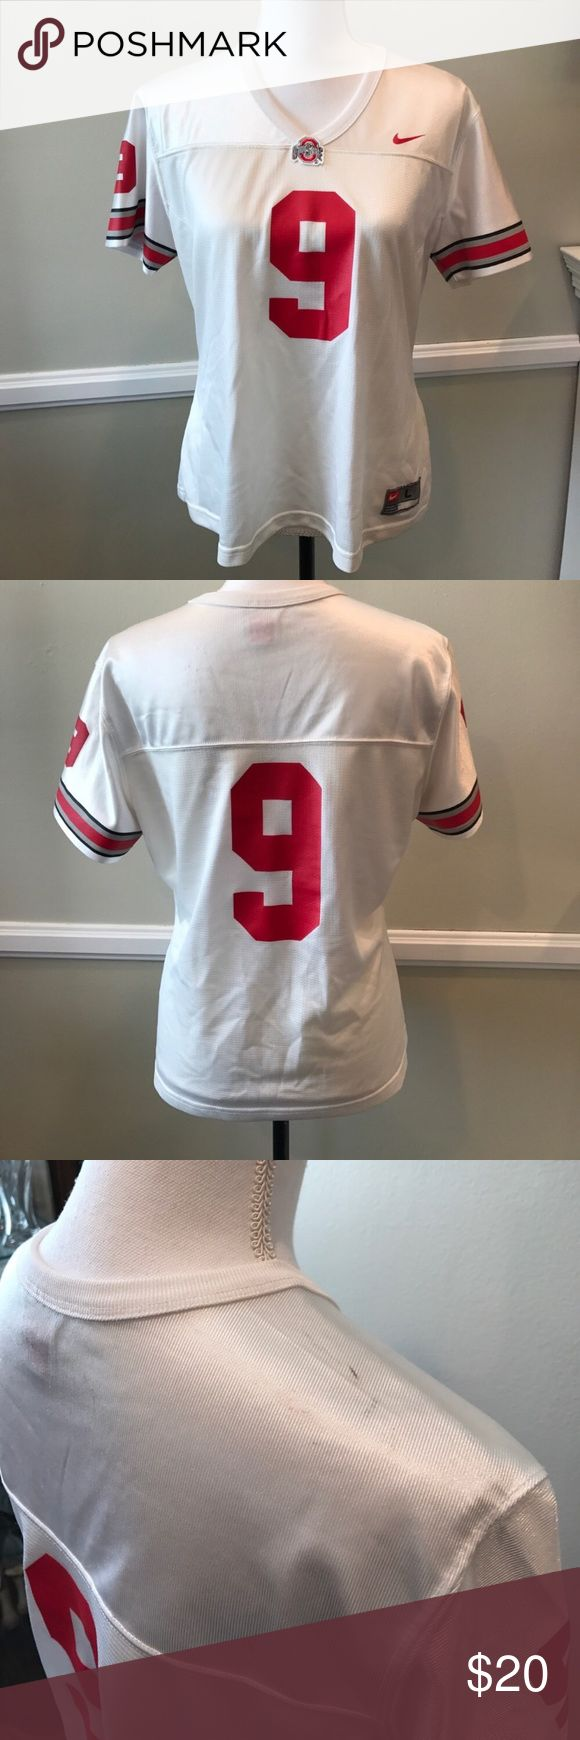 White Ohio State Jersey Bust measures 20.5 inches, black mark on shoulder, in good condition. (Reposh- was listed as women's but I'm pretty sure it is a youth jersey) Nike Tops Tees - Short Sleeve